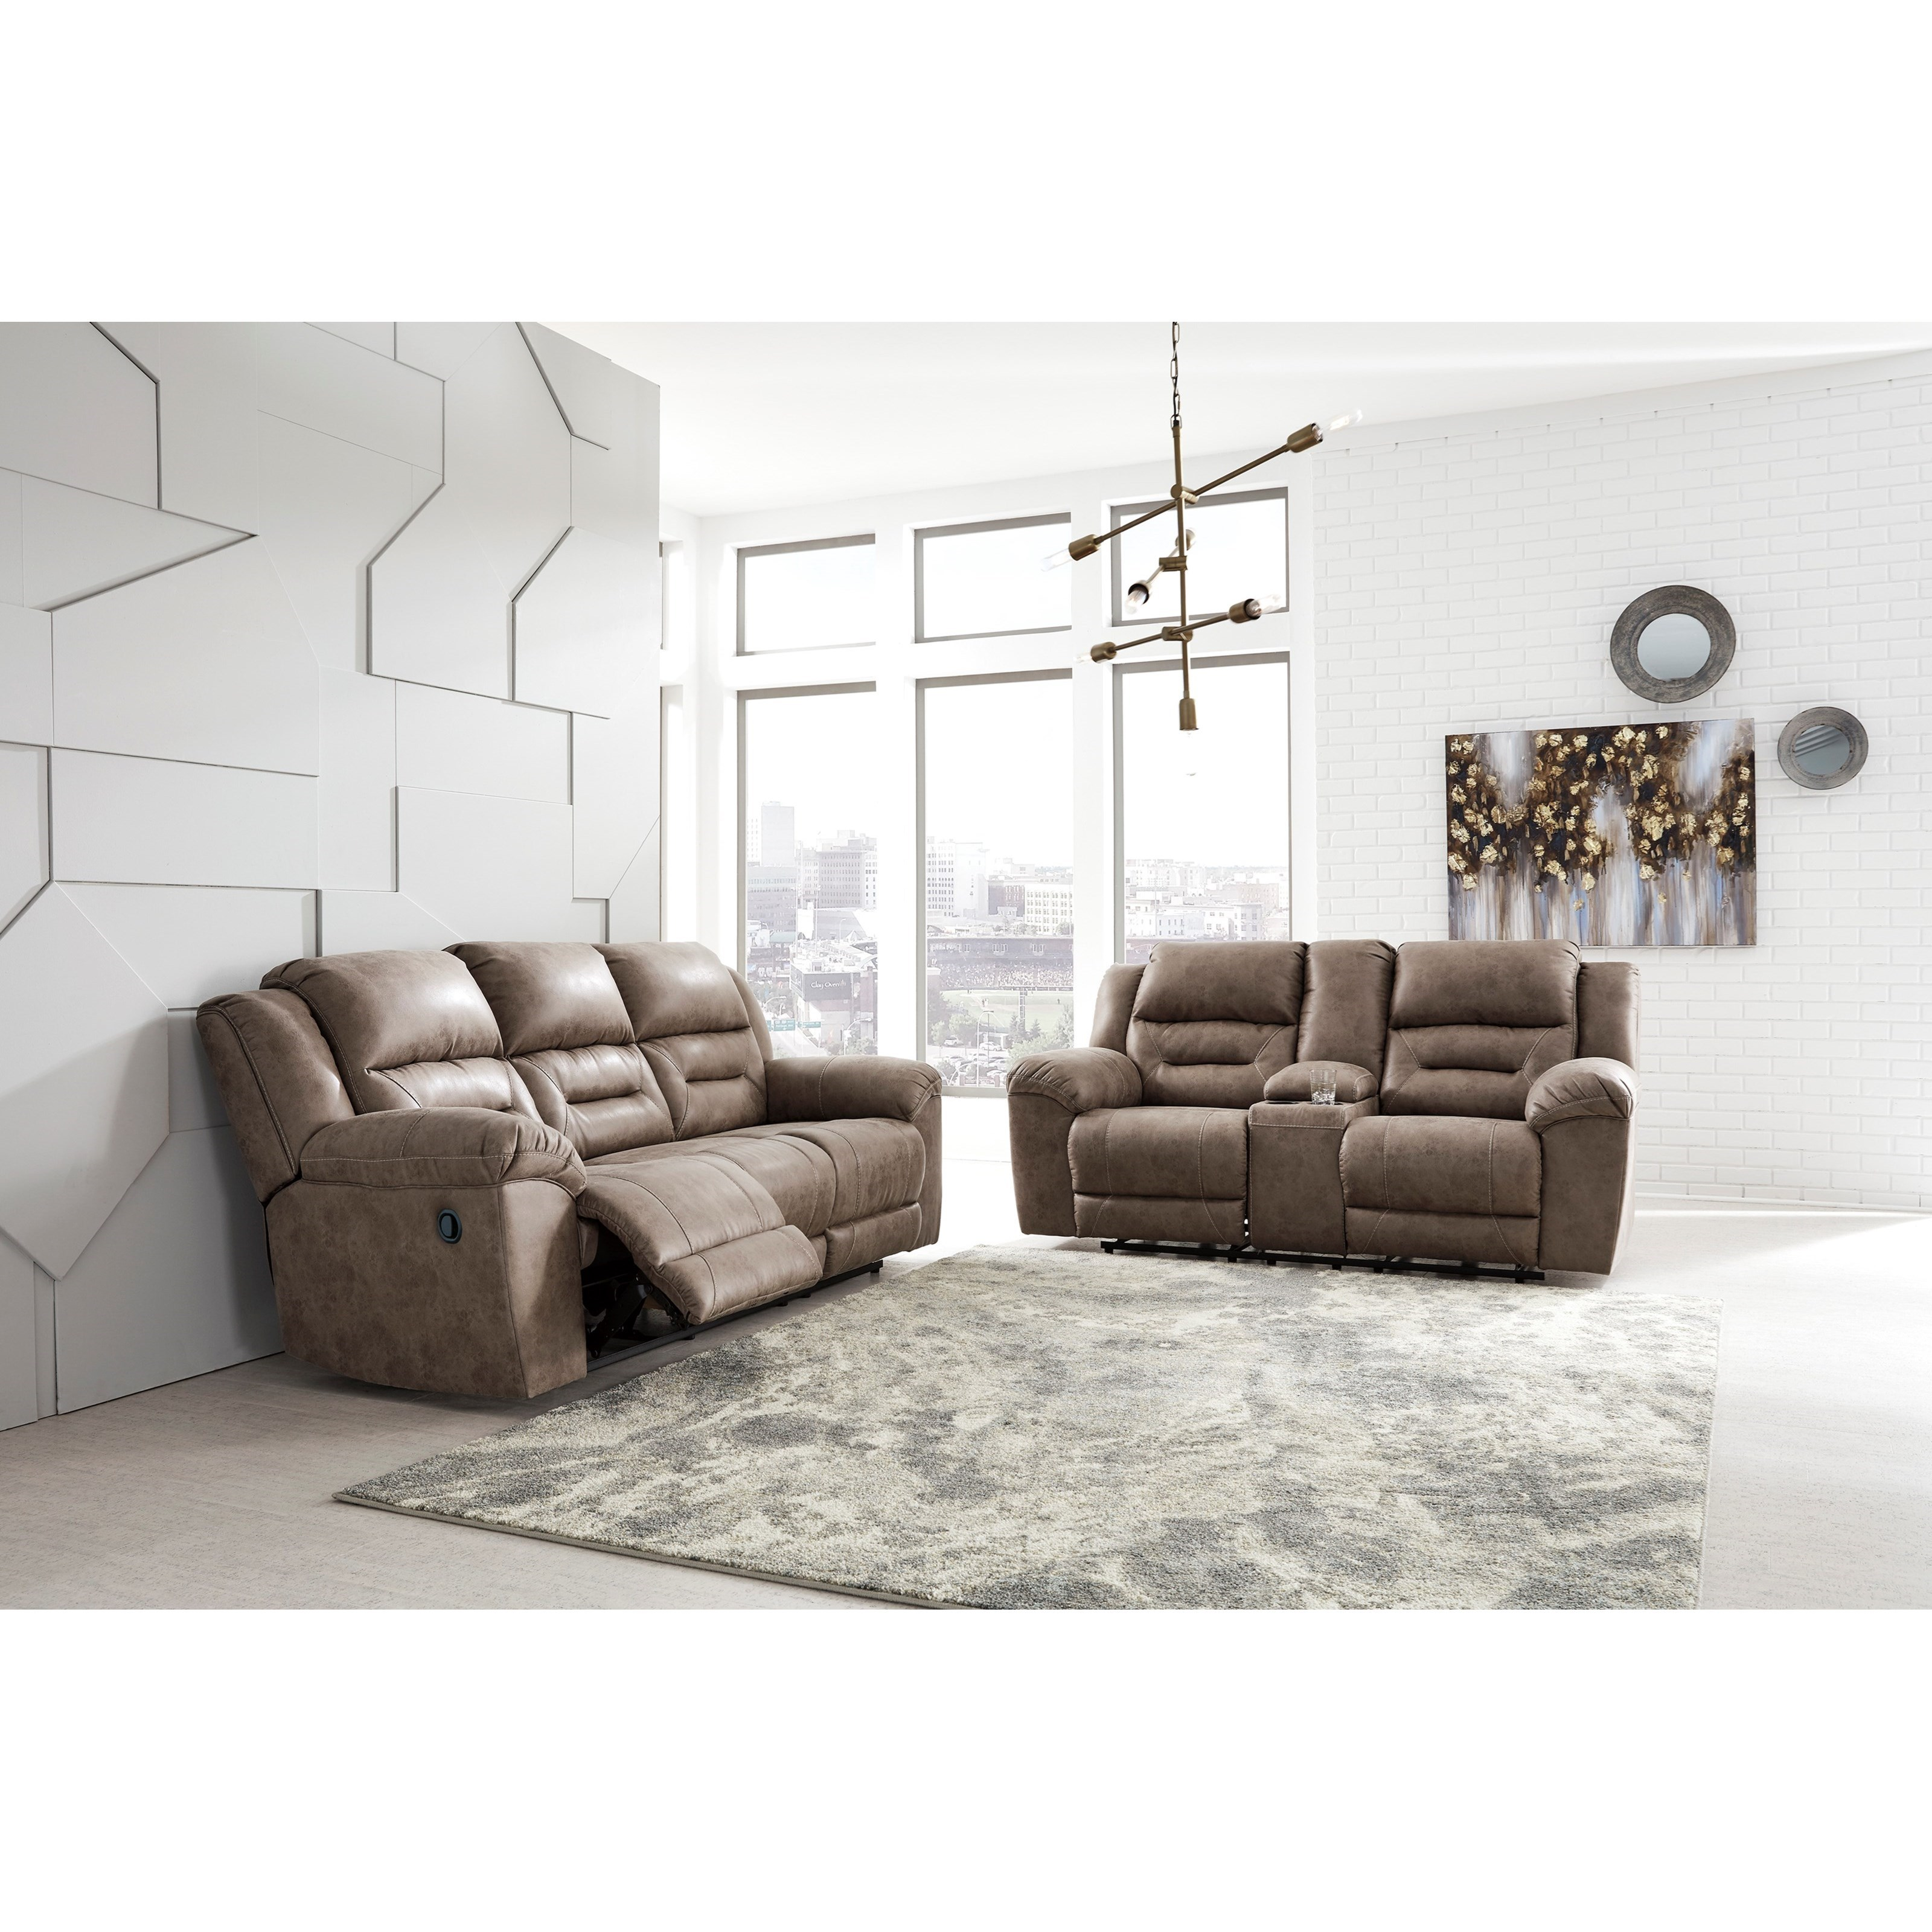 Stoneland Reclining Living Room Group by Signature Design by Ashley at Standard Furniture